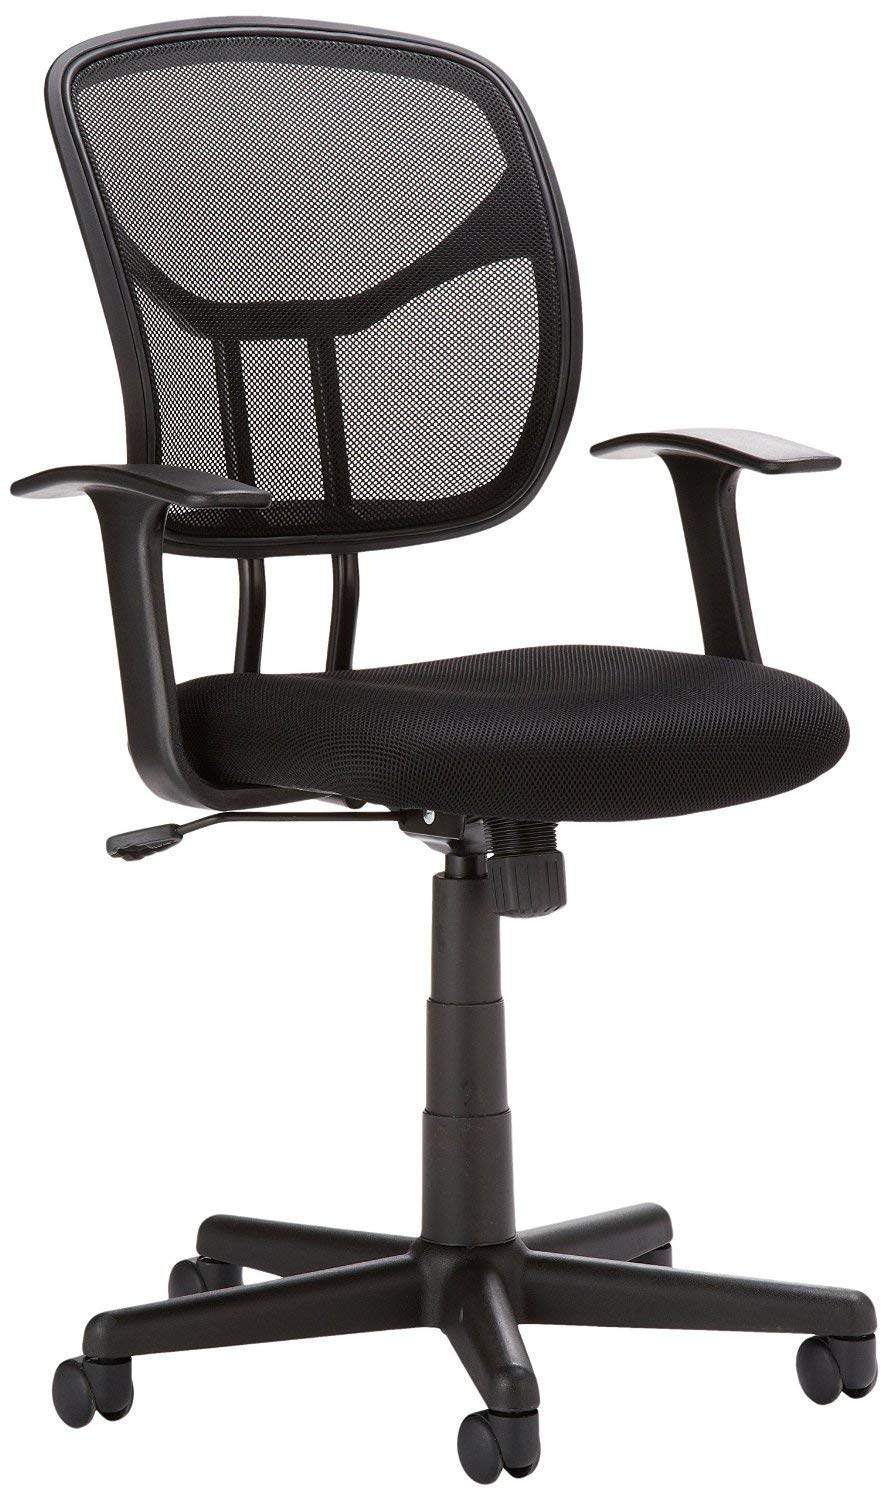 AmazonBasics Mid-Back Mesh Computer Chair